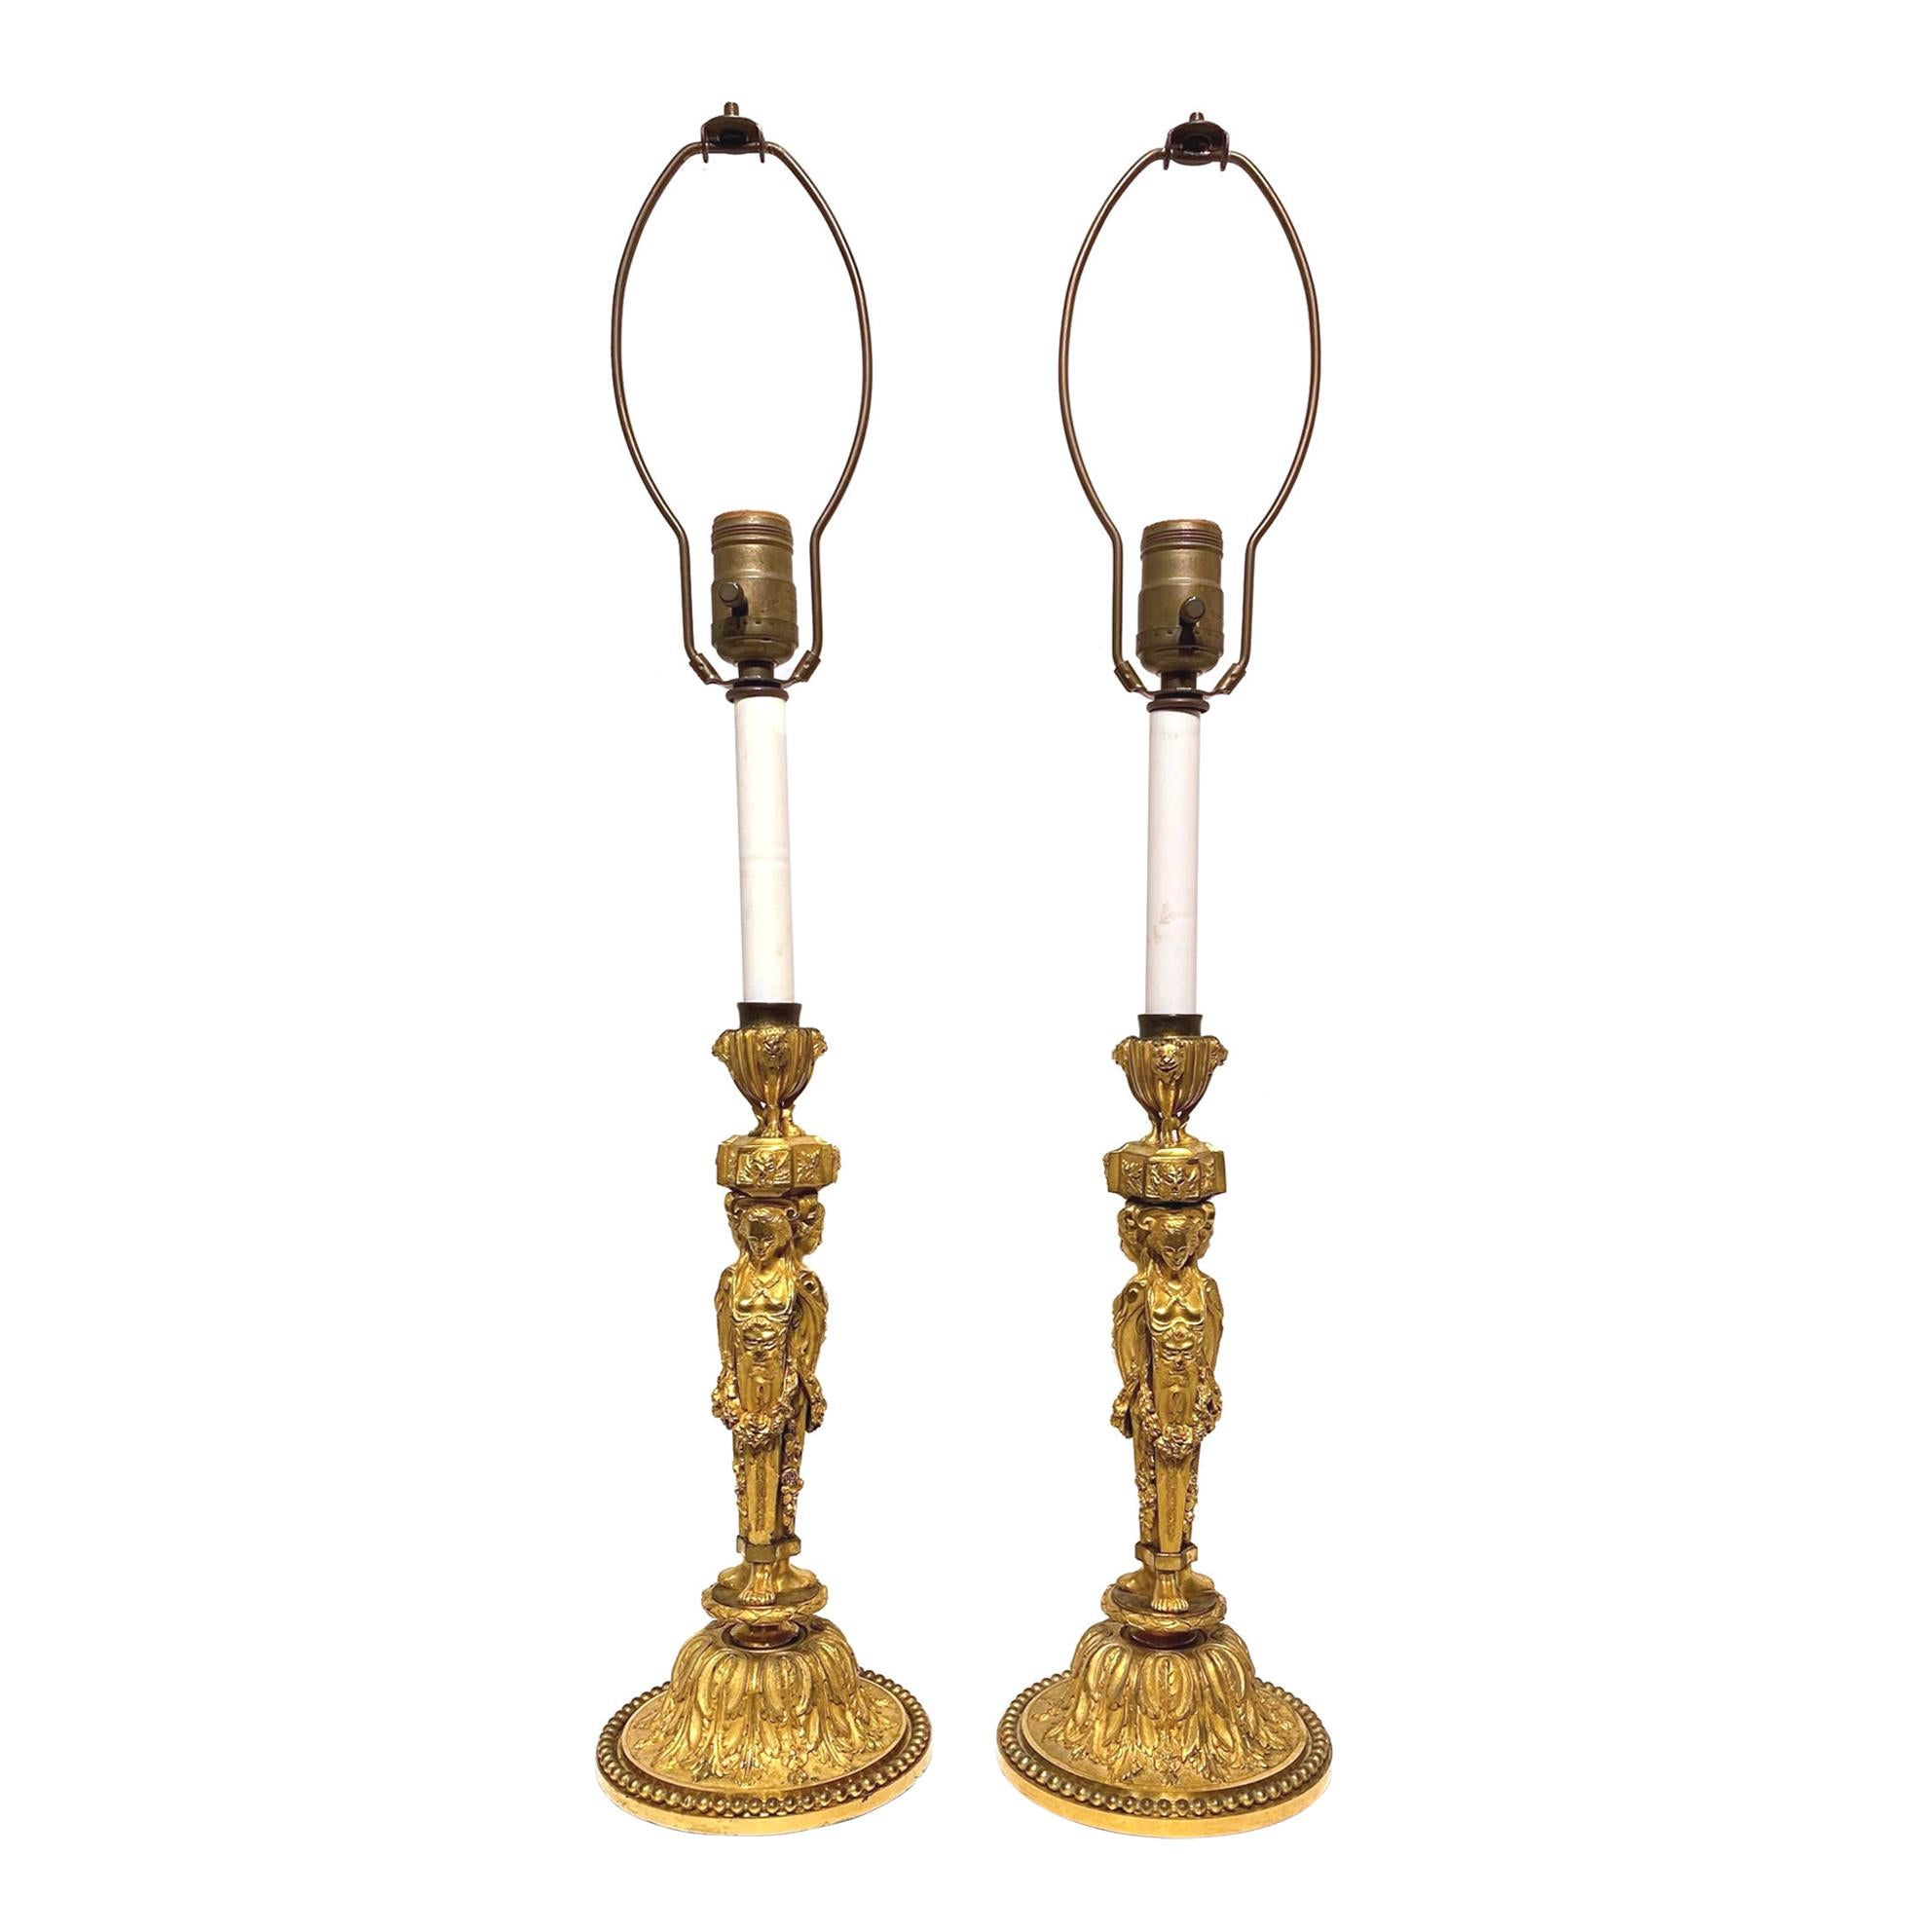 Pair of Louis XVI Style Gilt Bronze Candlestick Lamps